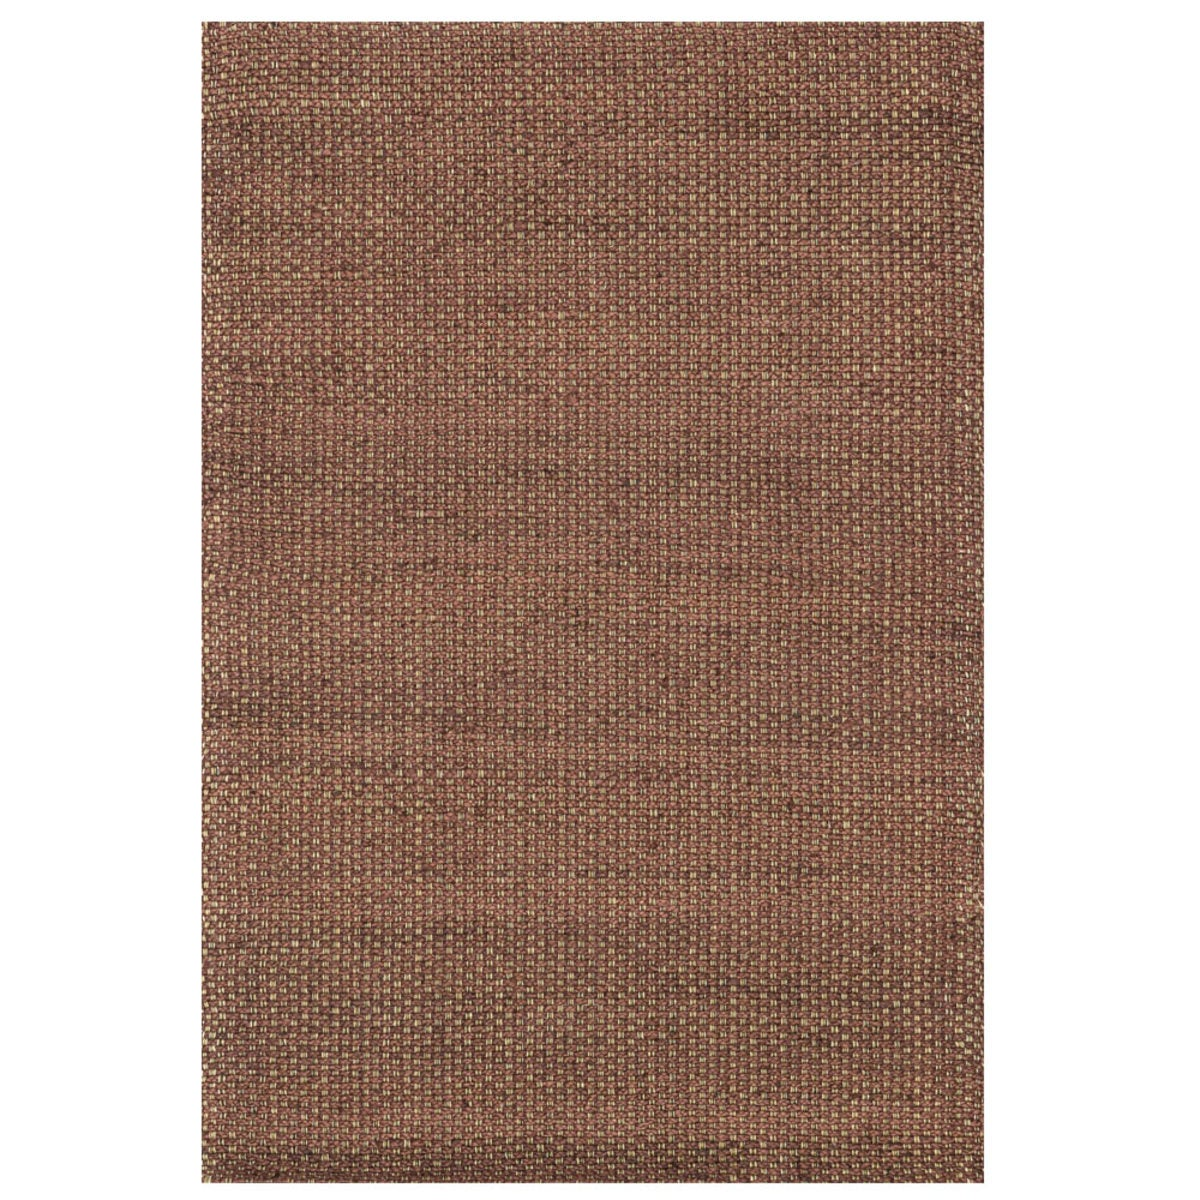 "Loloi Eco Checked Jute Rug in Black - 7'9"" x 9'9"" - Rust"